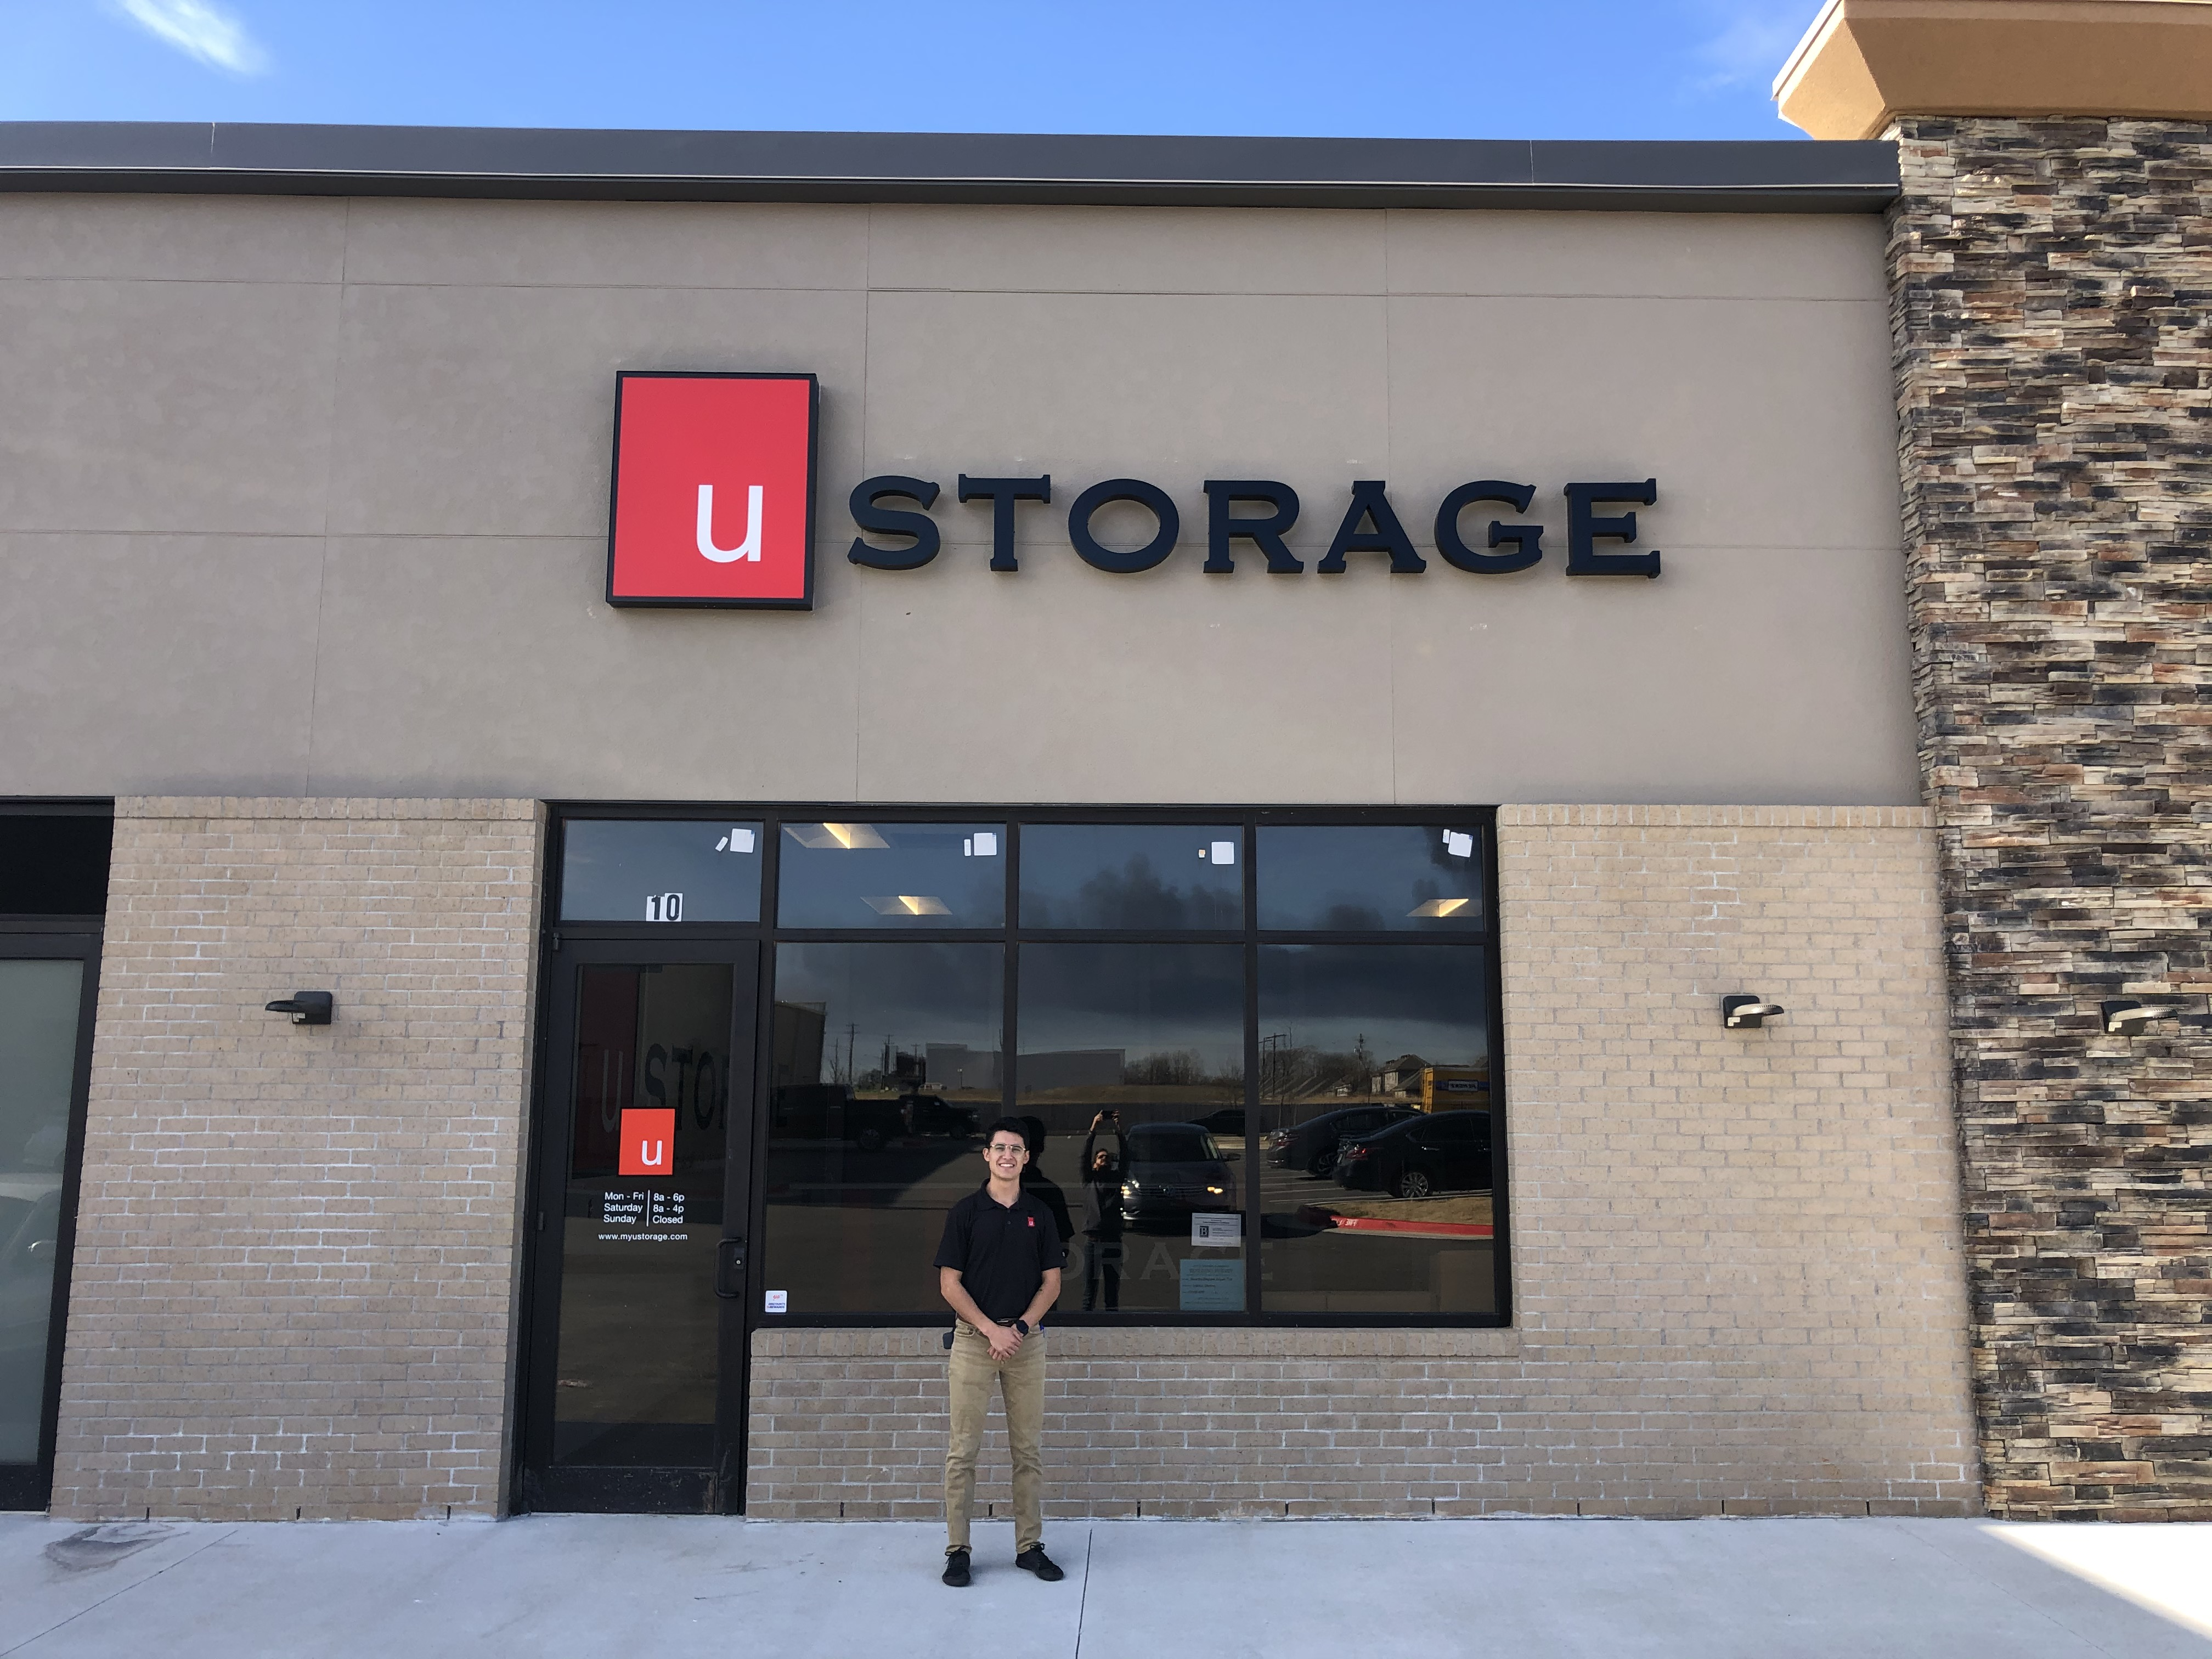 Self-storage in Bentonville